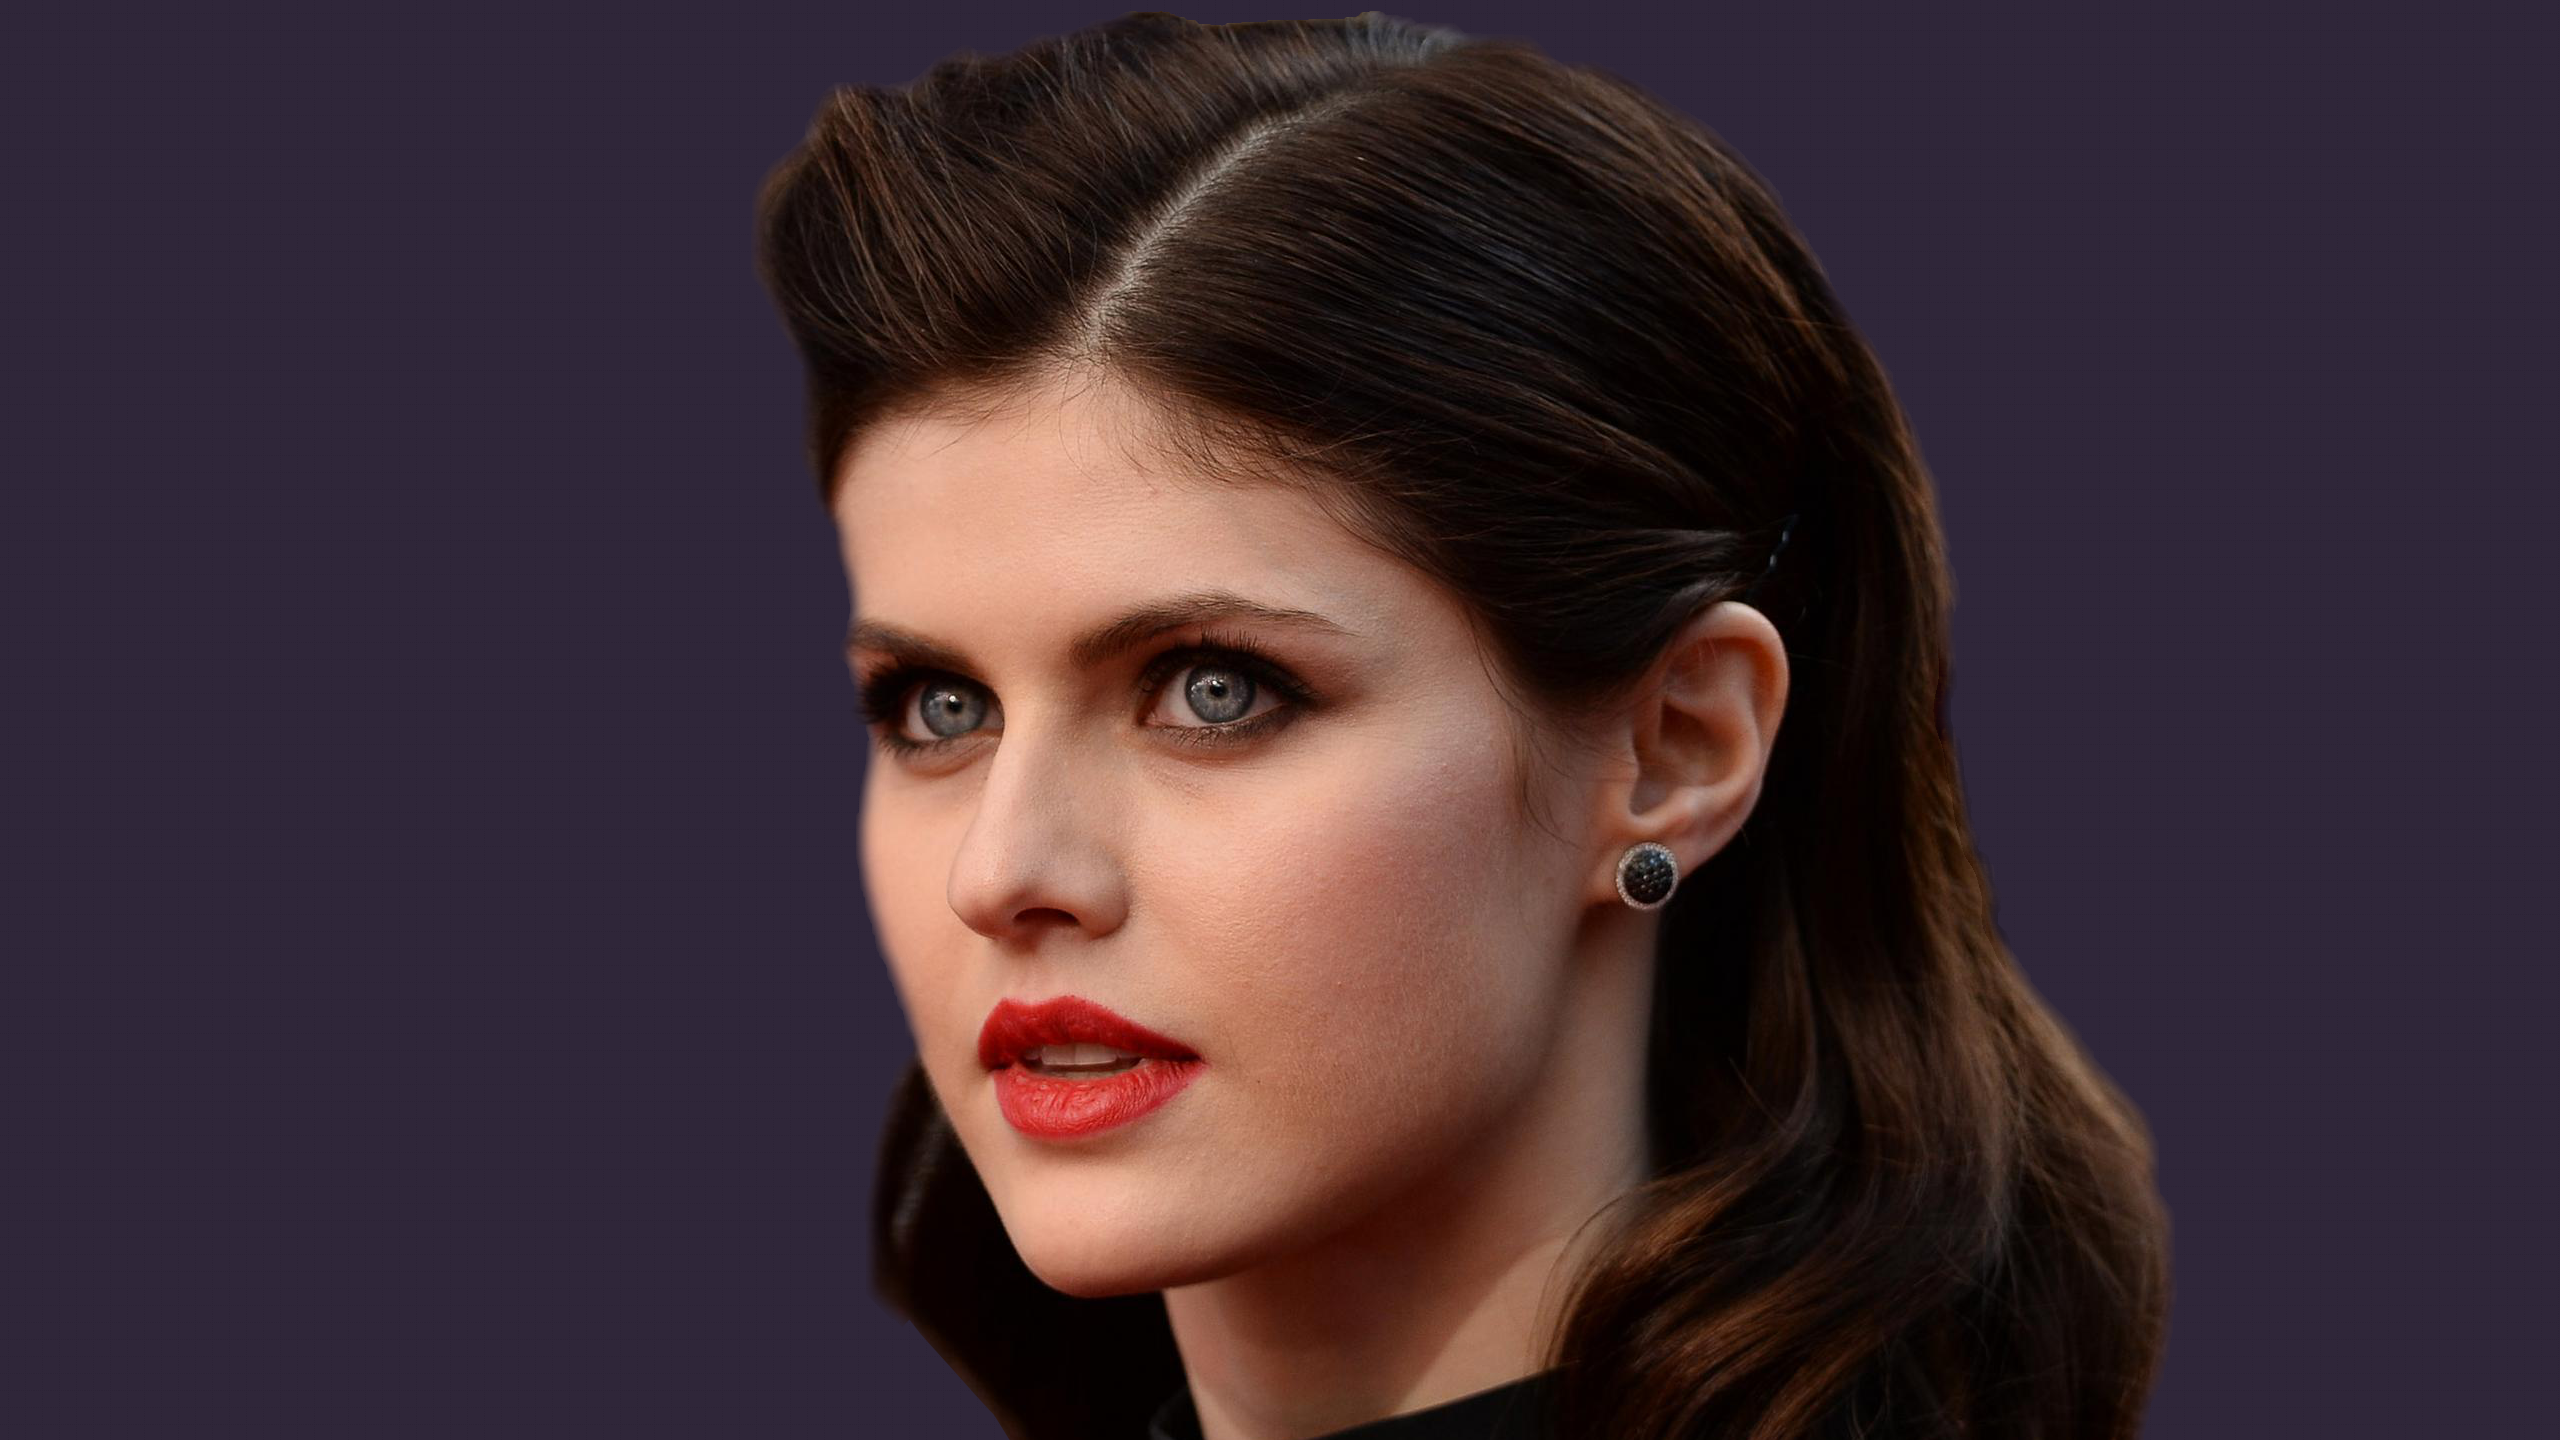 Celebrity - Alexandra Daddario Earrings Blue Eyes Brunette Face American  Actress Wallpaper - Celebrities HD PNG